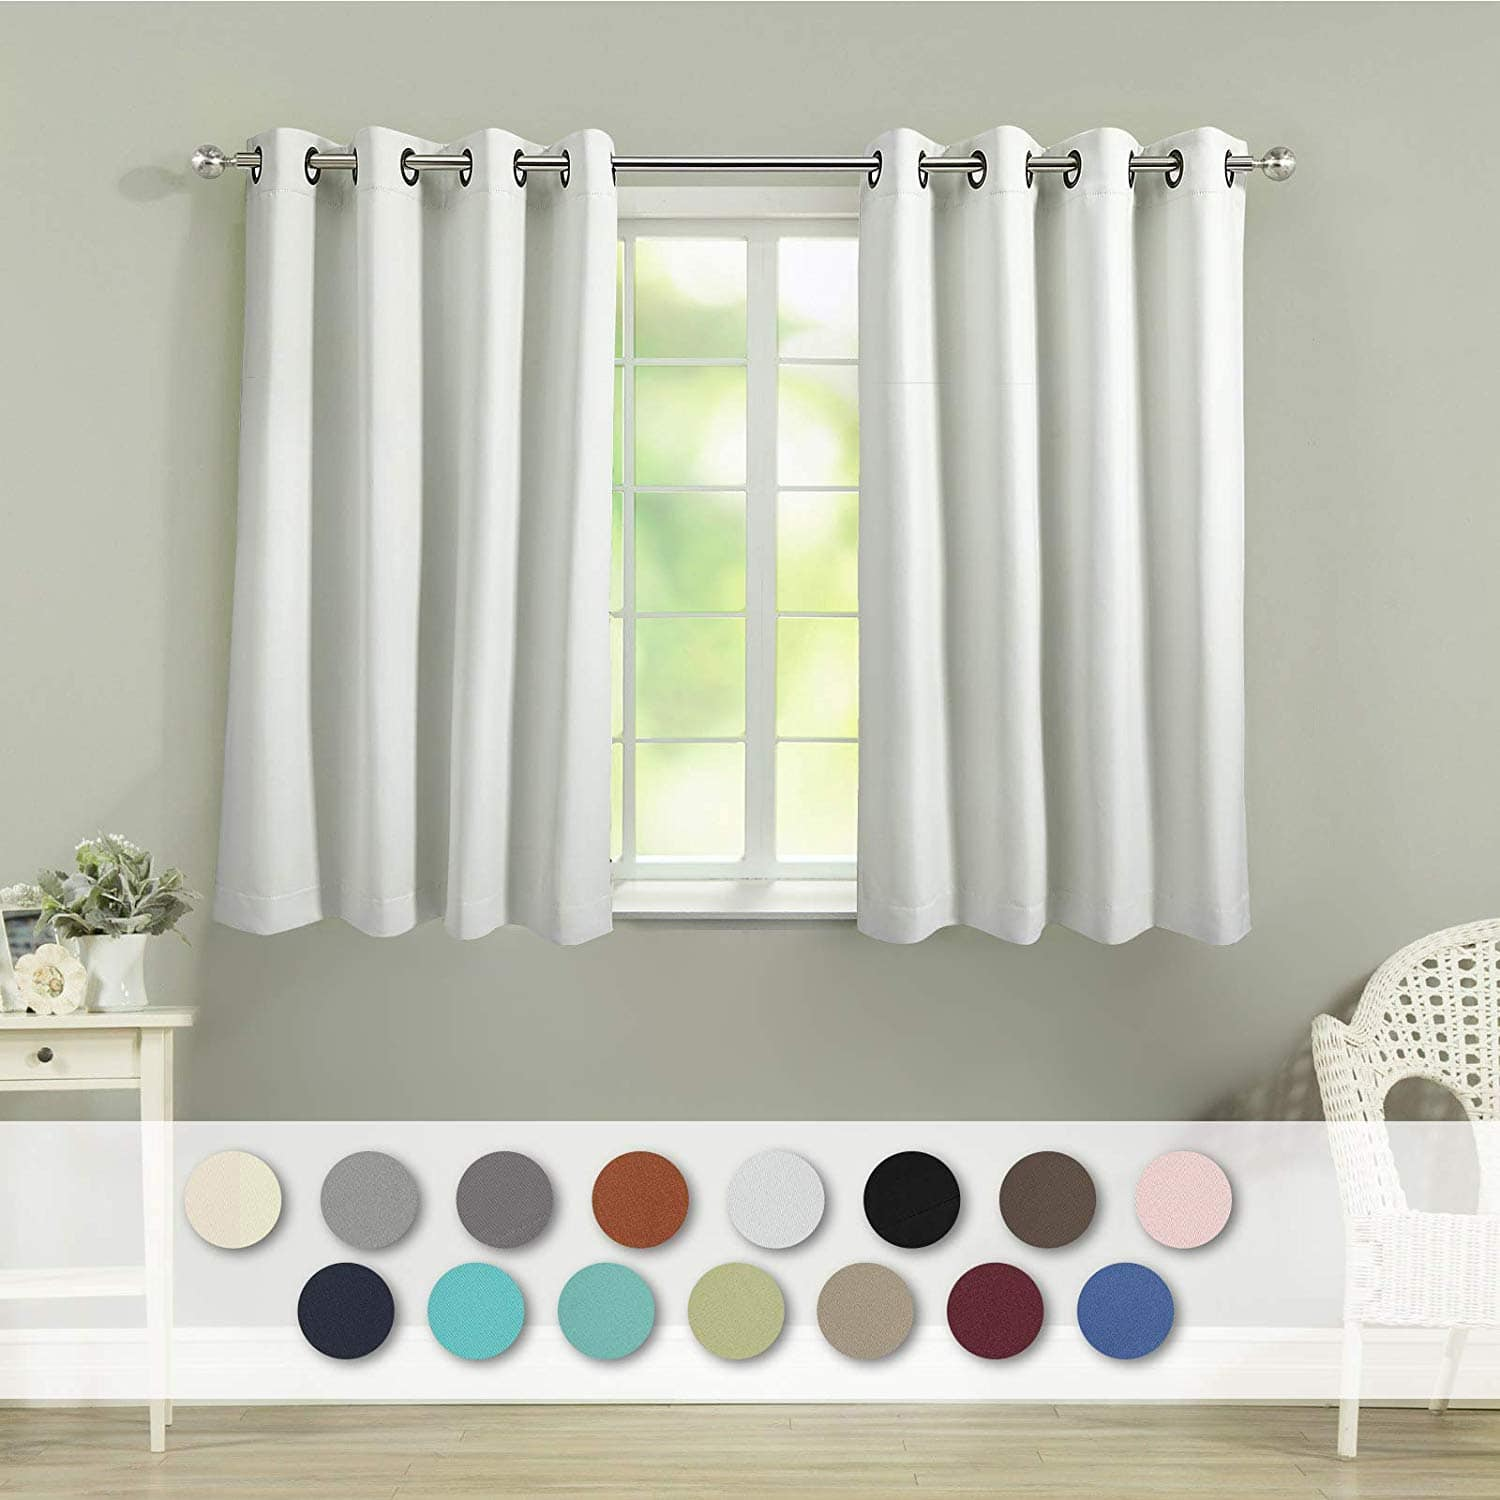 45 Inch Blackout Curtains Veeyoo Thermal Insulated Blackout Curtains 2 Panels 52